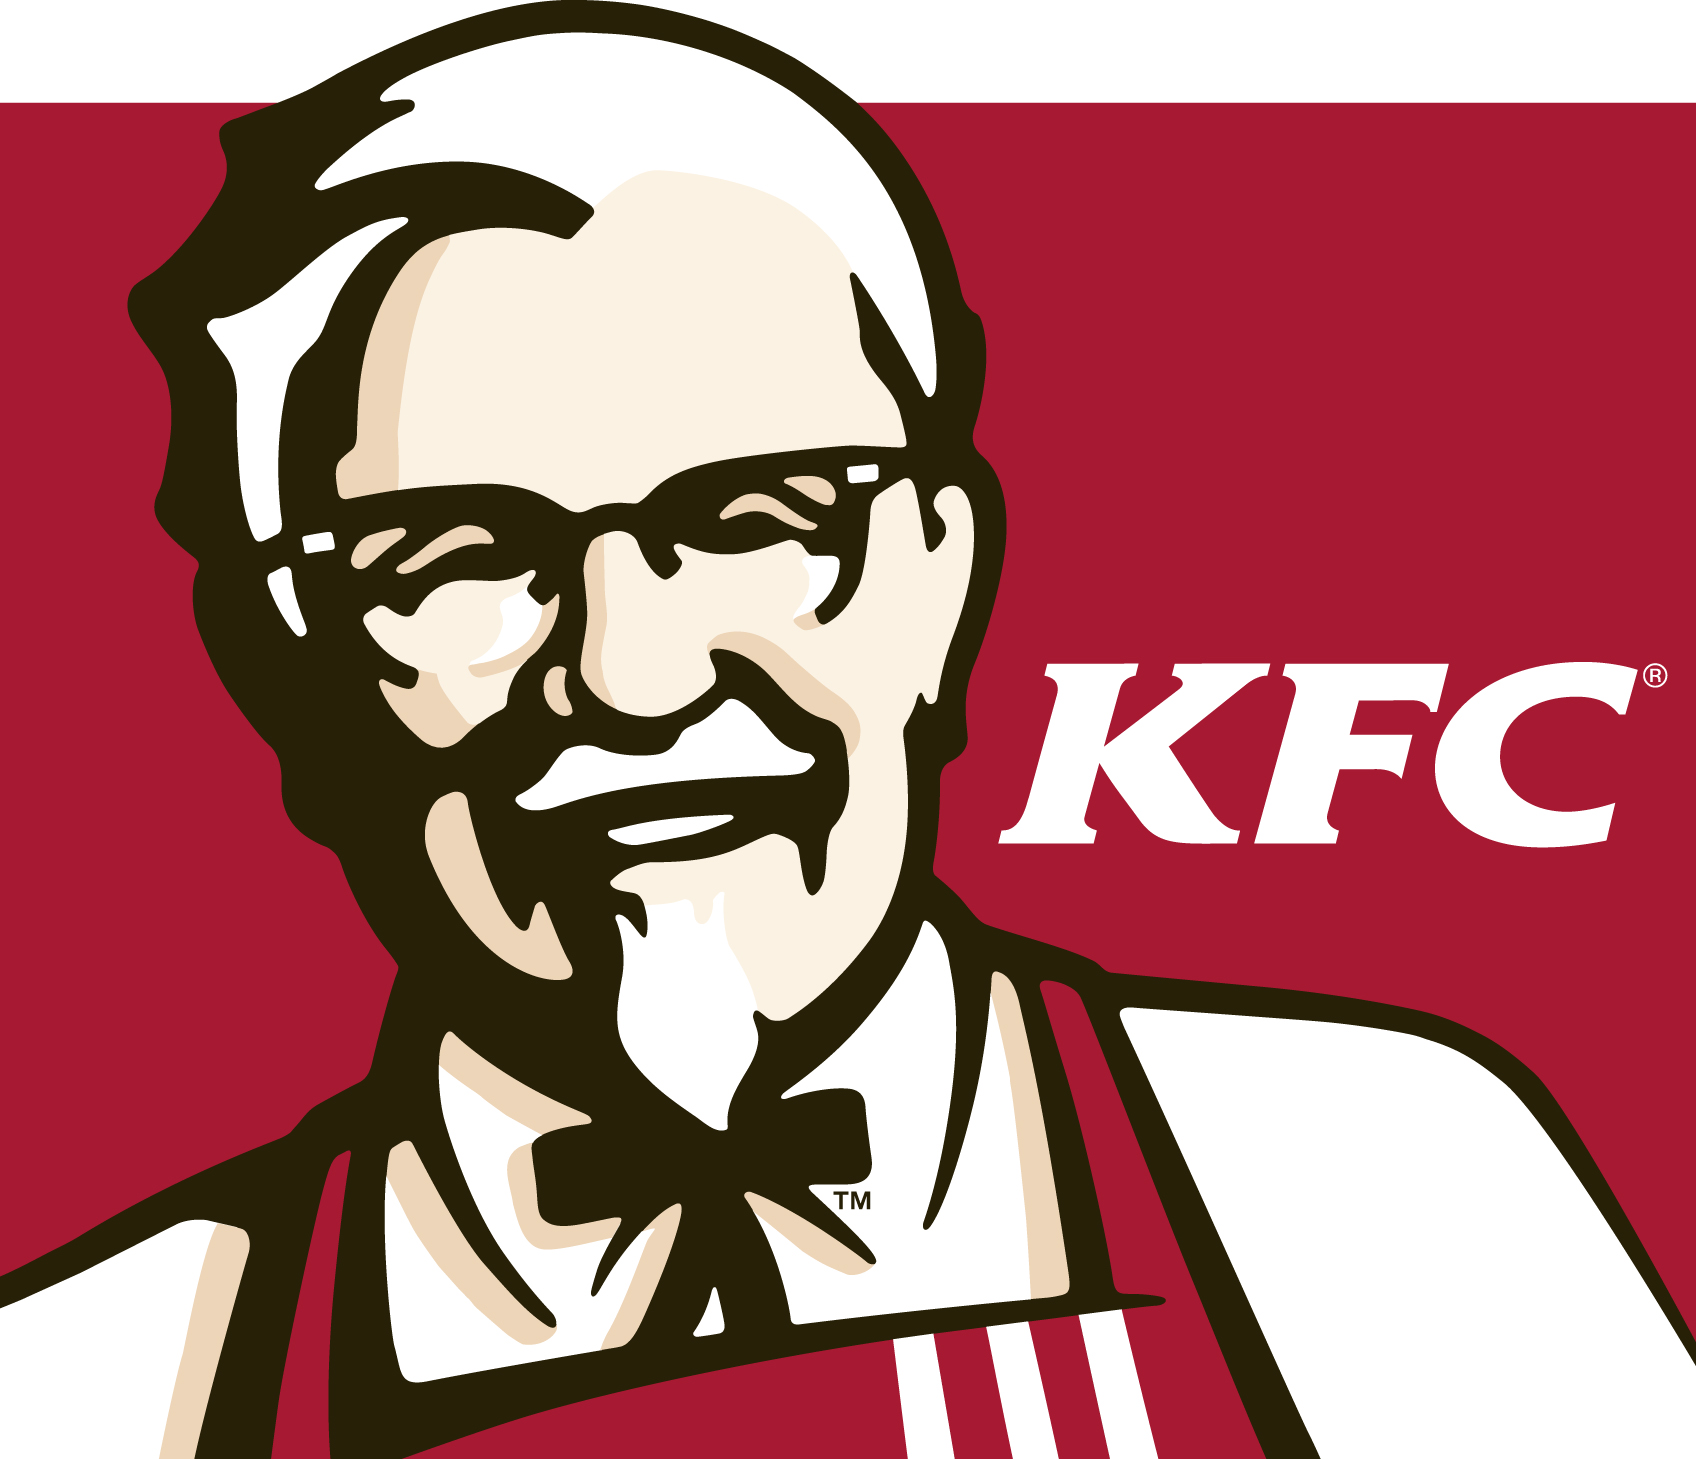 Kfc so Good Logo Kfc Logo